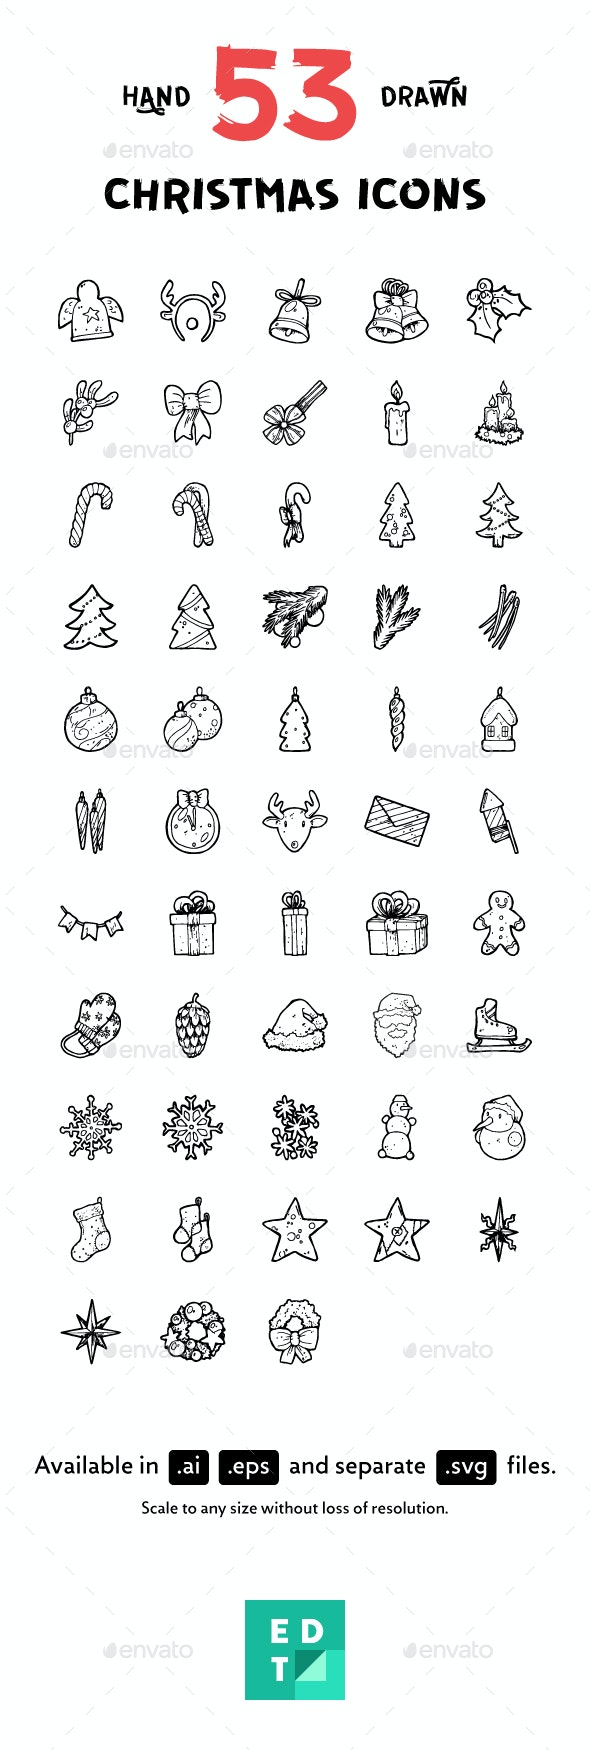 53 Christmas Hand-Drawn Icons - Seasonal Icons